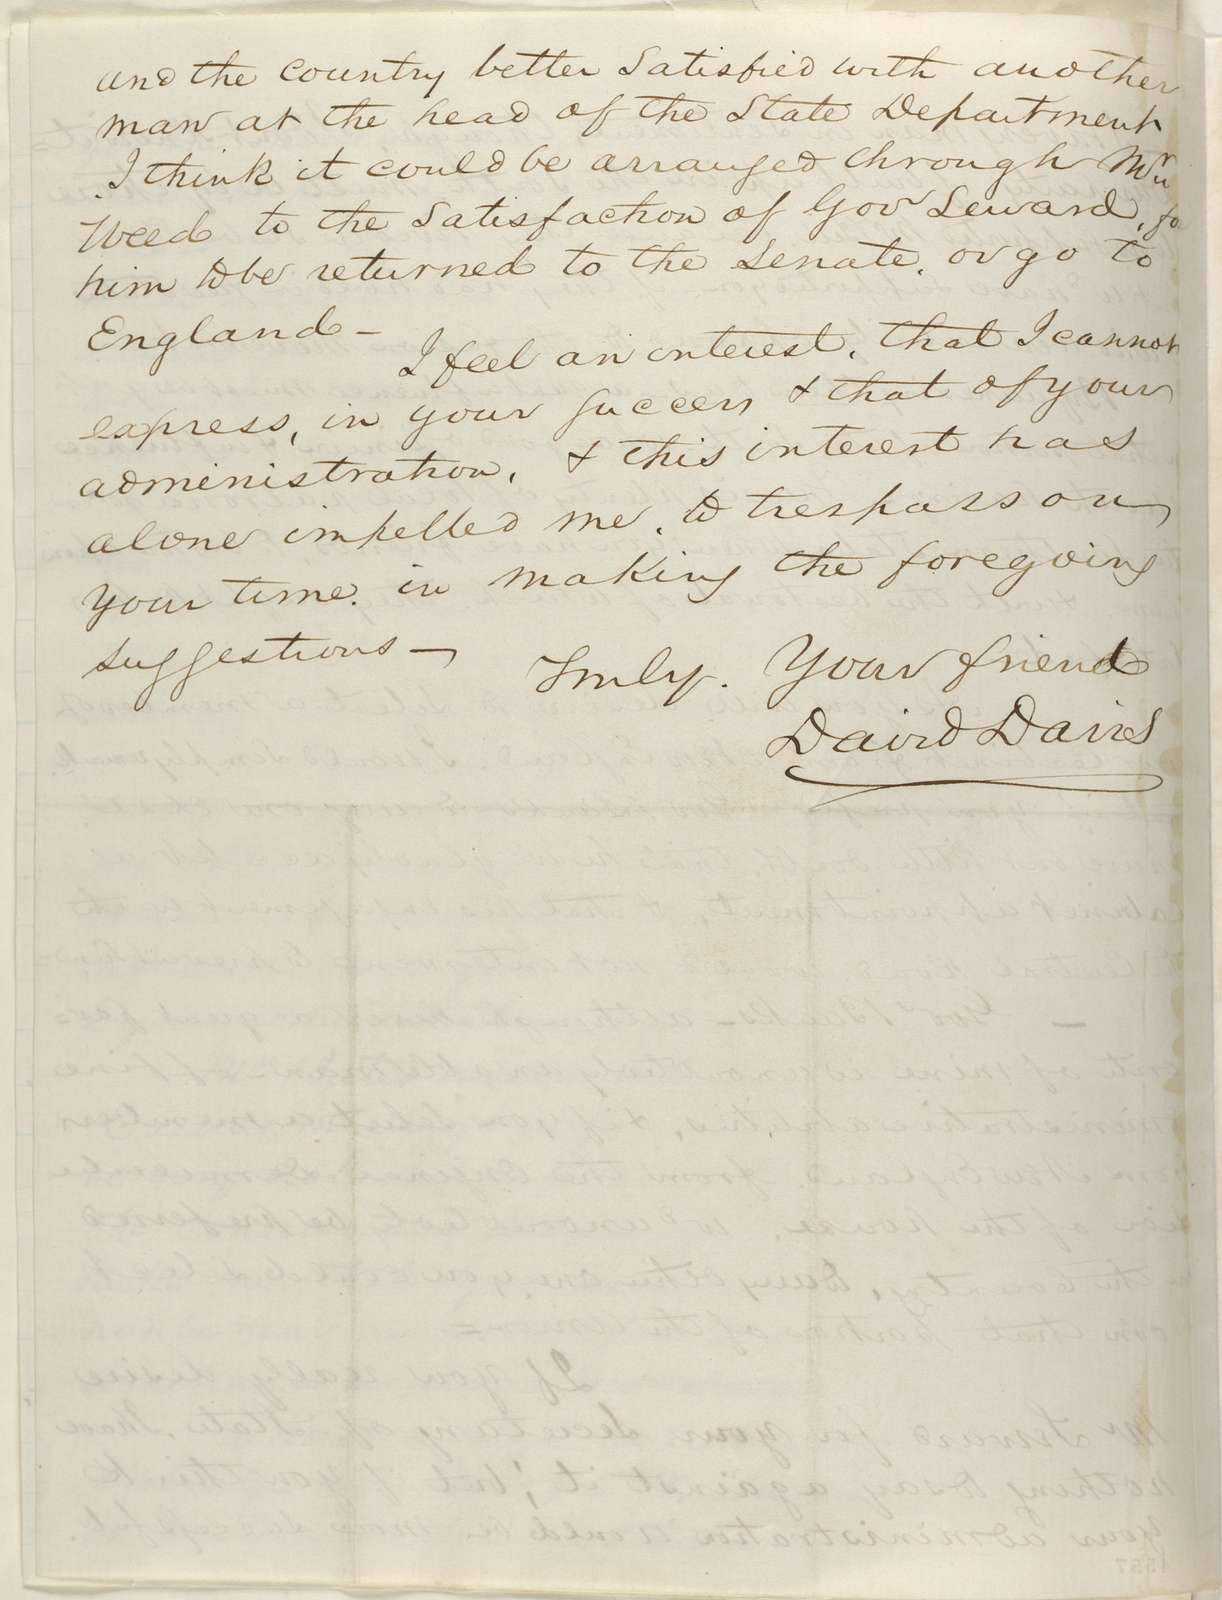 Abraham Lincoln papers: Series 1. General Correspondence. 1833-1916: David Davis to Abraham Lincoln, Monday, November 19, 1860 (Wants Caleb Smith in cabinet)